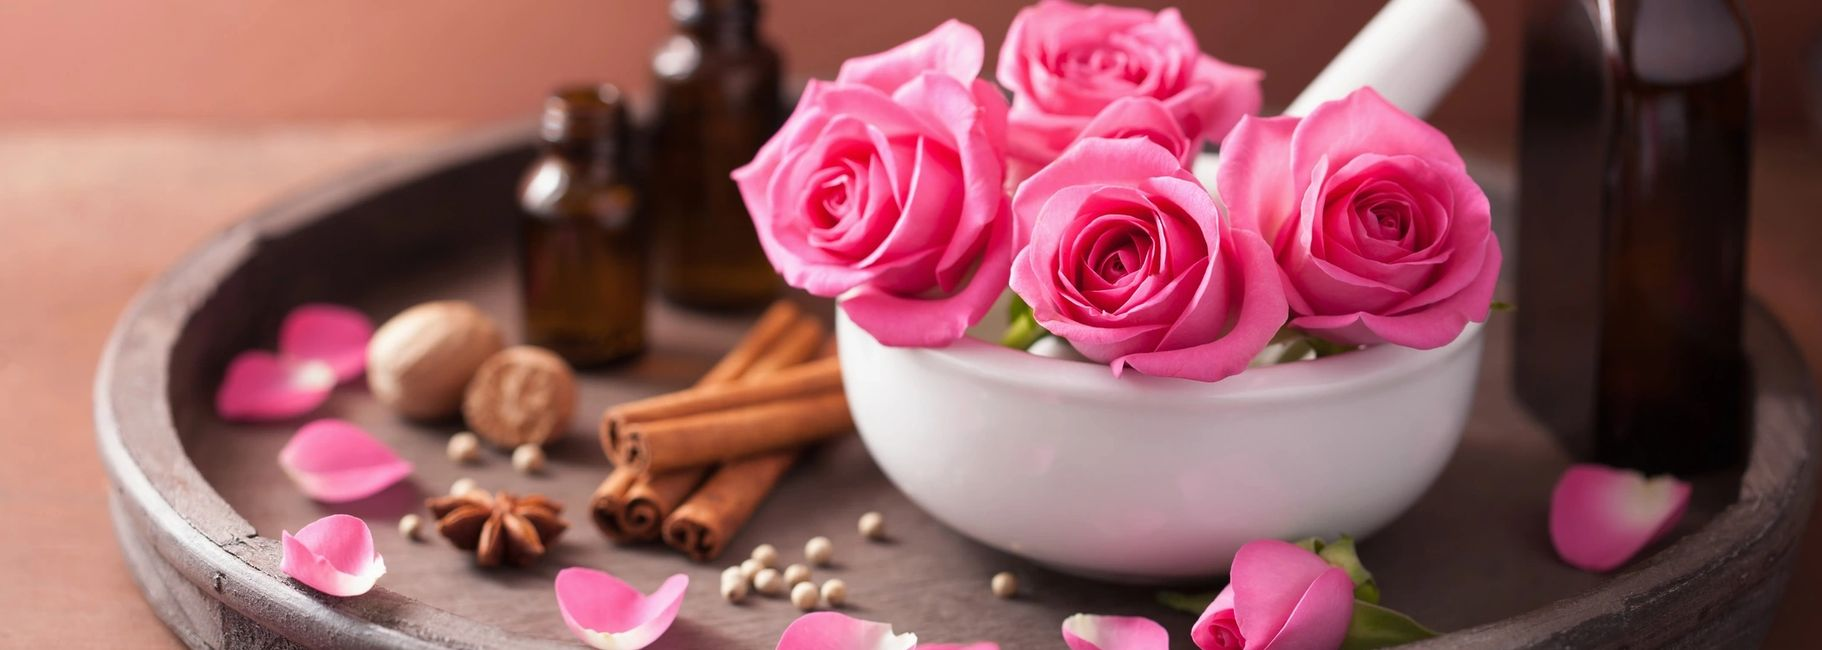 Four pink roses in a white bowl set on a larger brown plate which also holds 3 tincture bottles and a few rose petals are scattered about